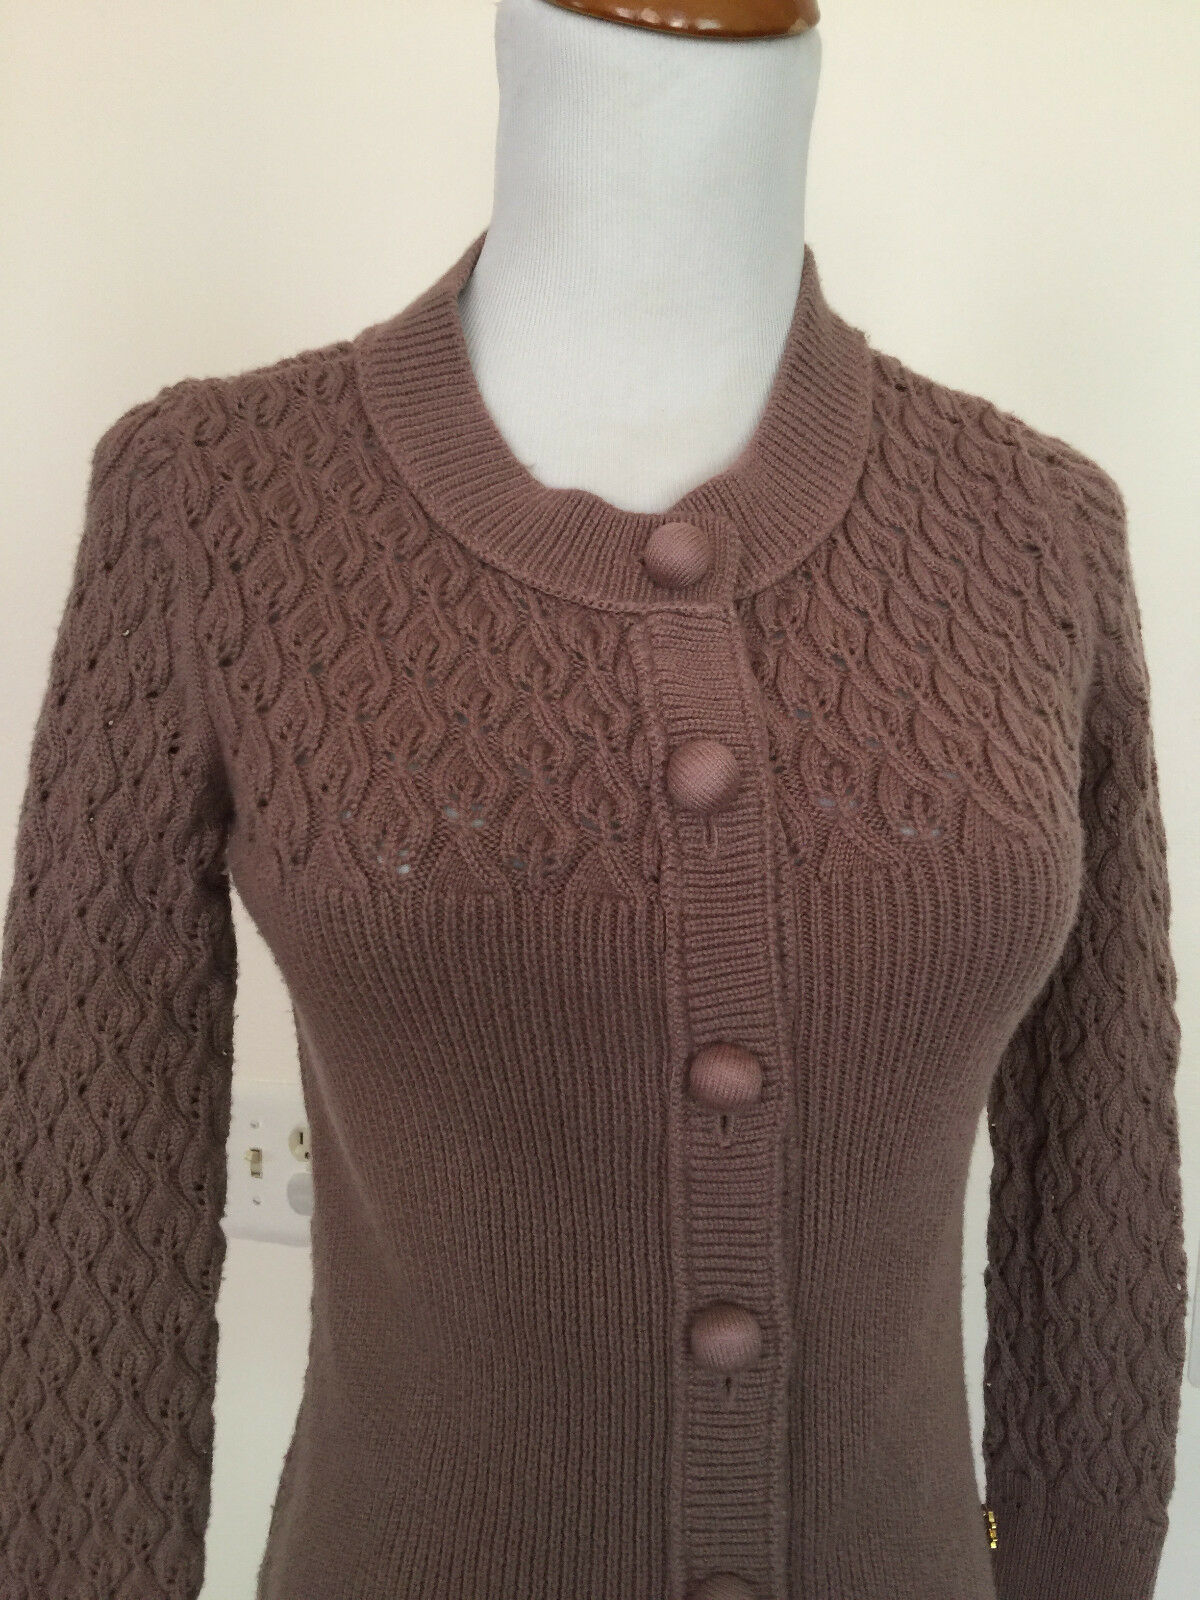 Tory Burch Wool Open Knit Cardigan size size size Small S 5012ef